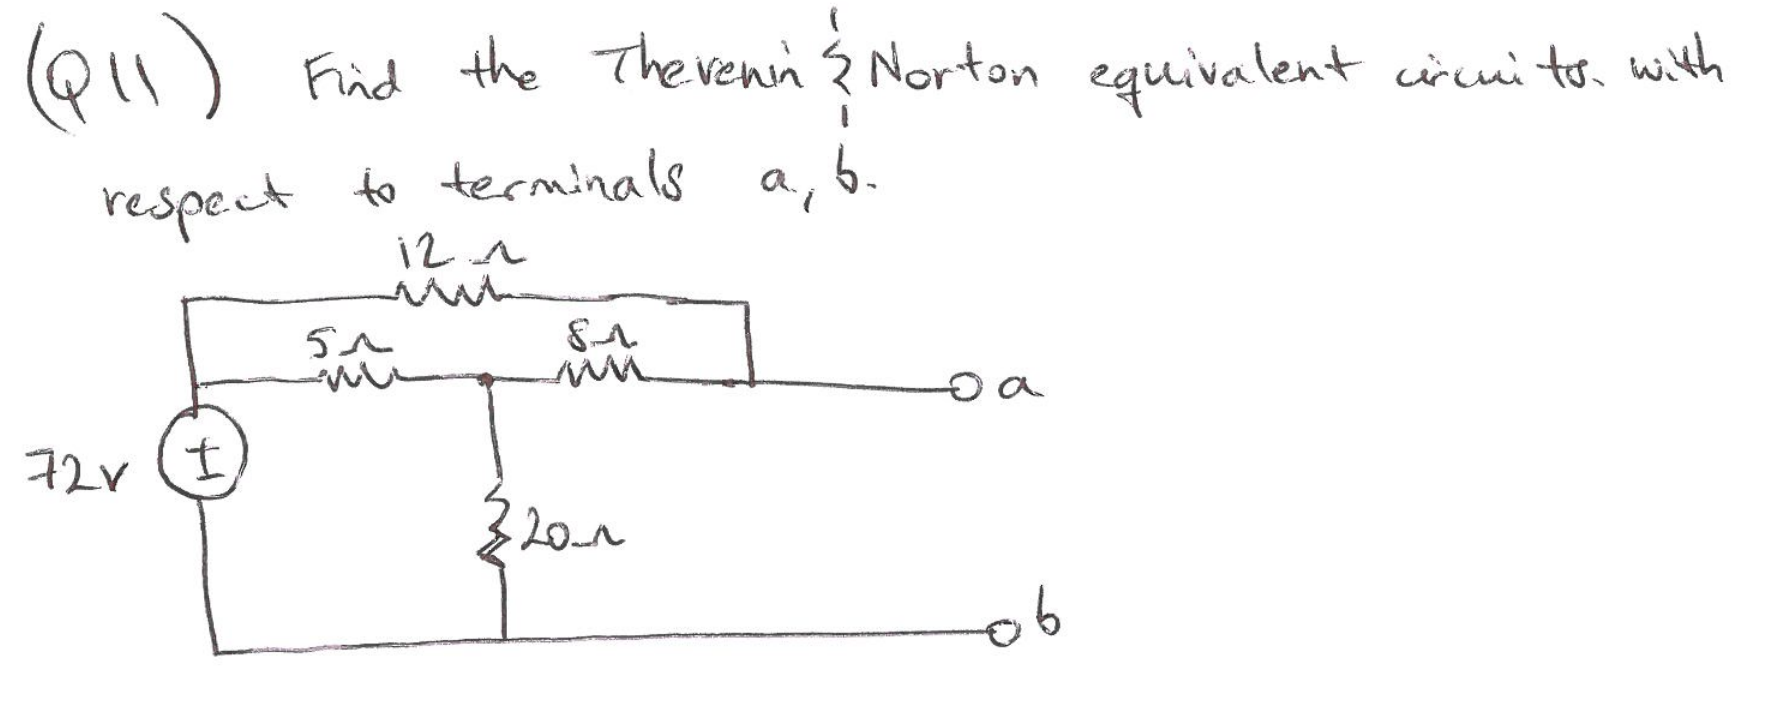 Find th ethevenin norten equivalent circuits with